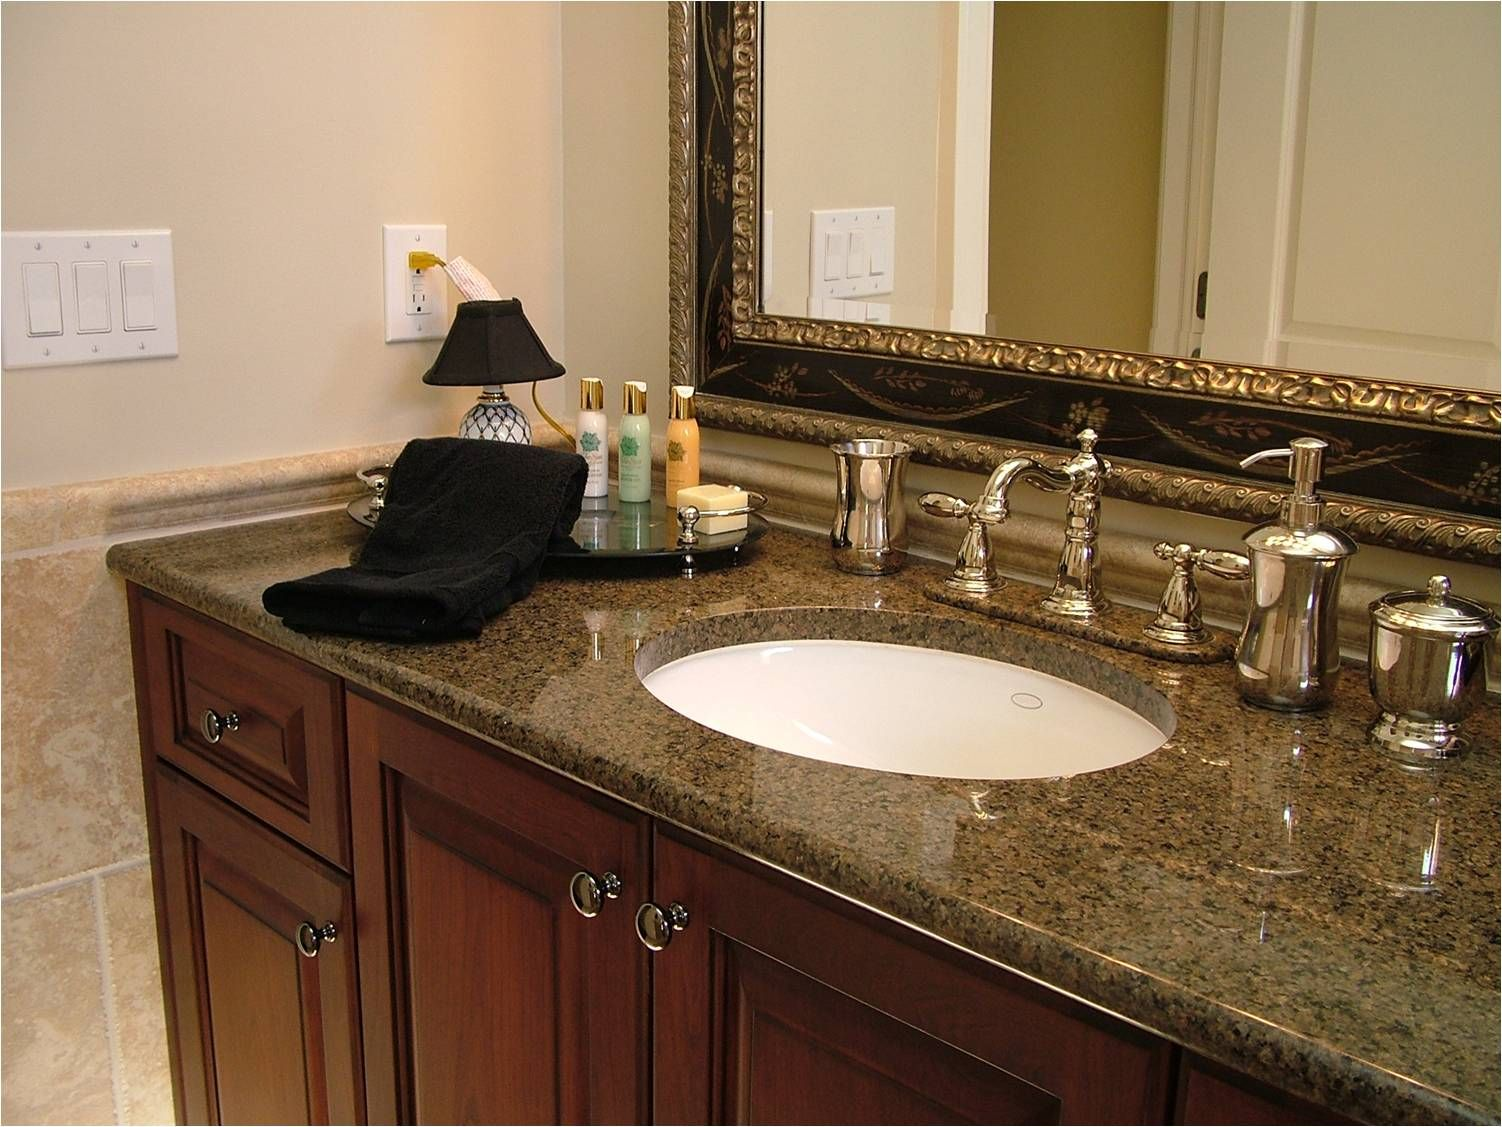 Bathroom Granite dave's granite | natural stone, granite, quartz countertops